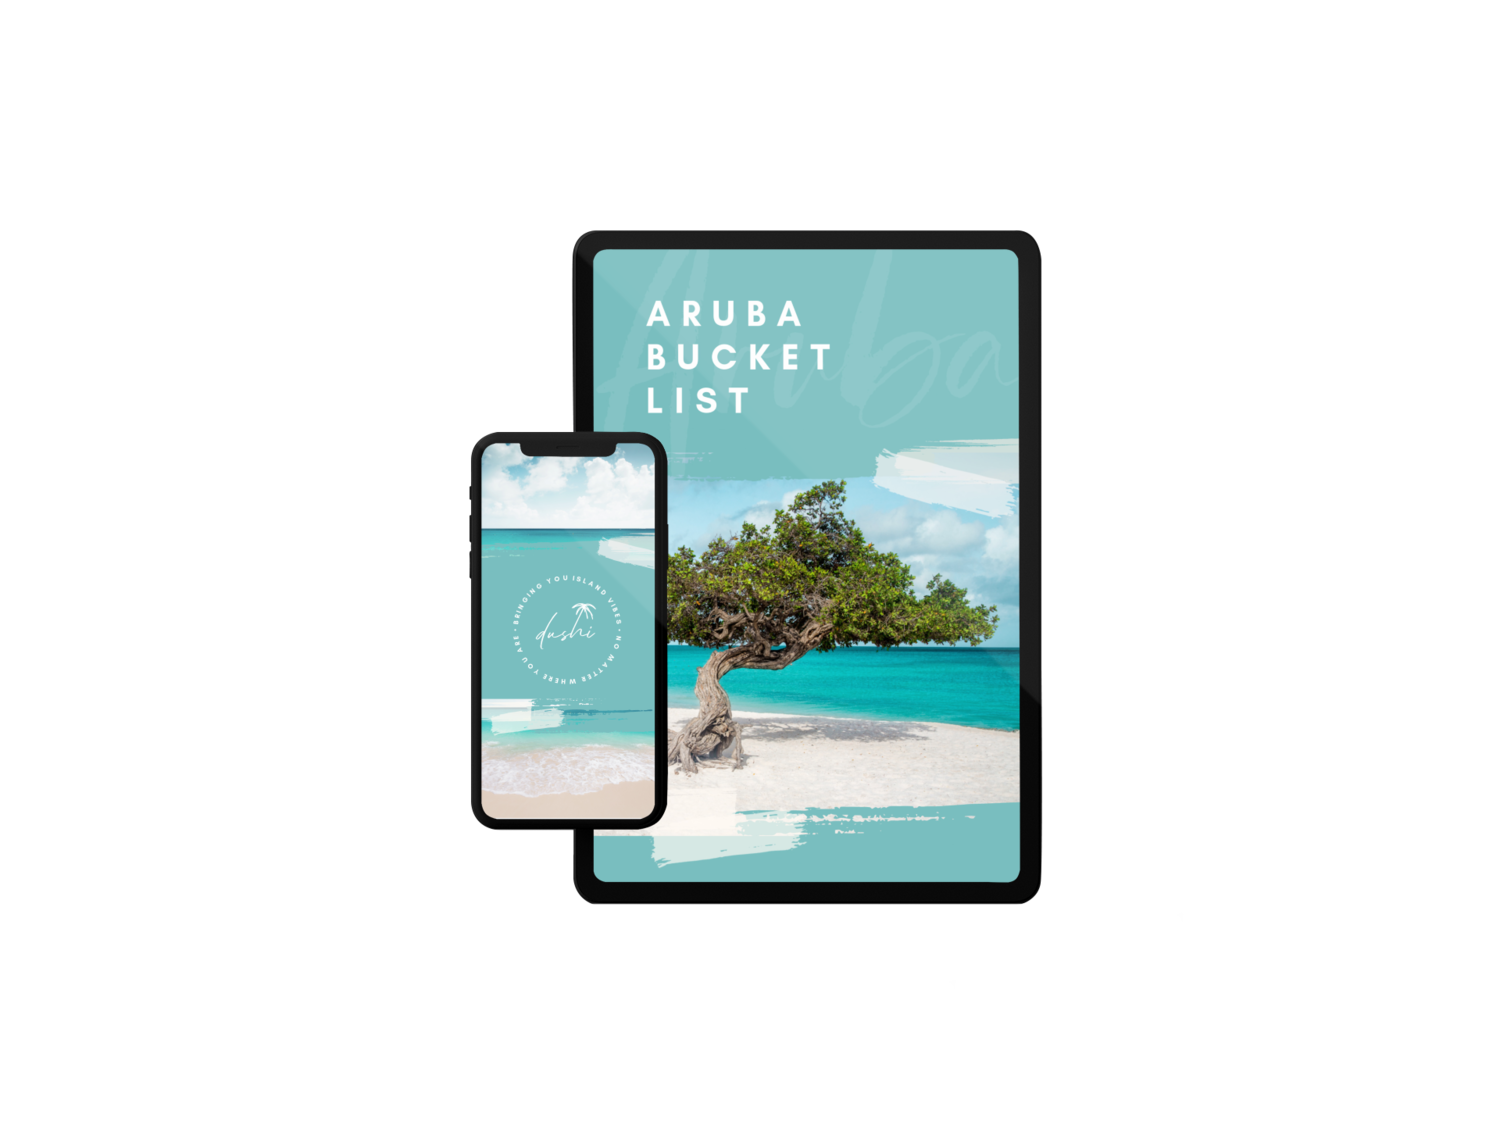 Free Aruba Bucket List